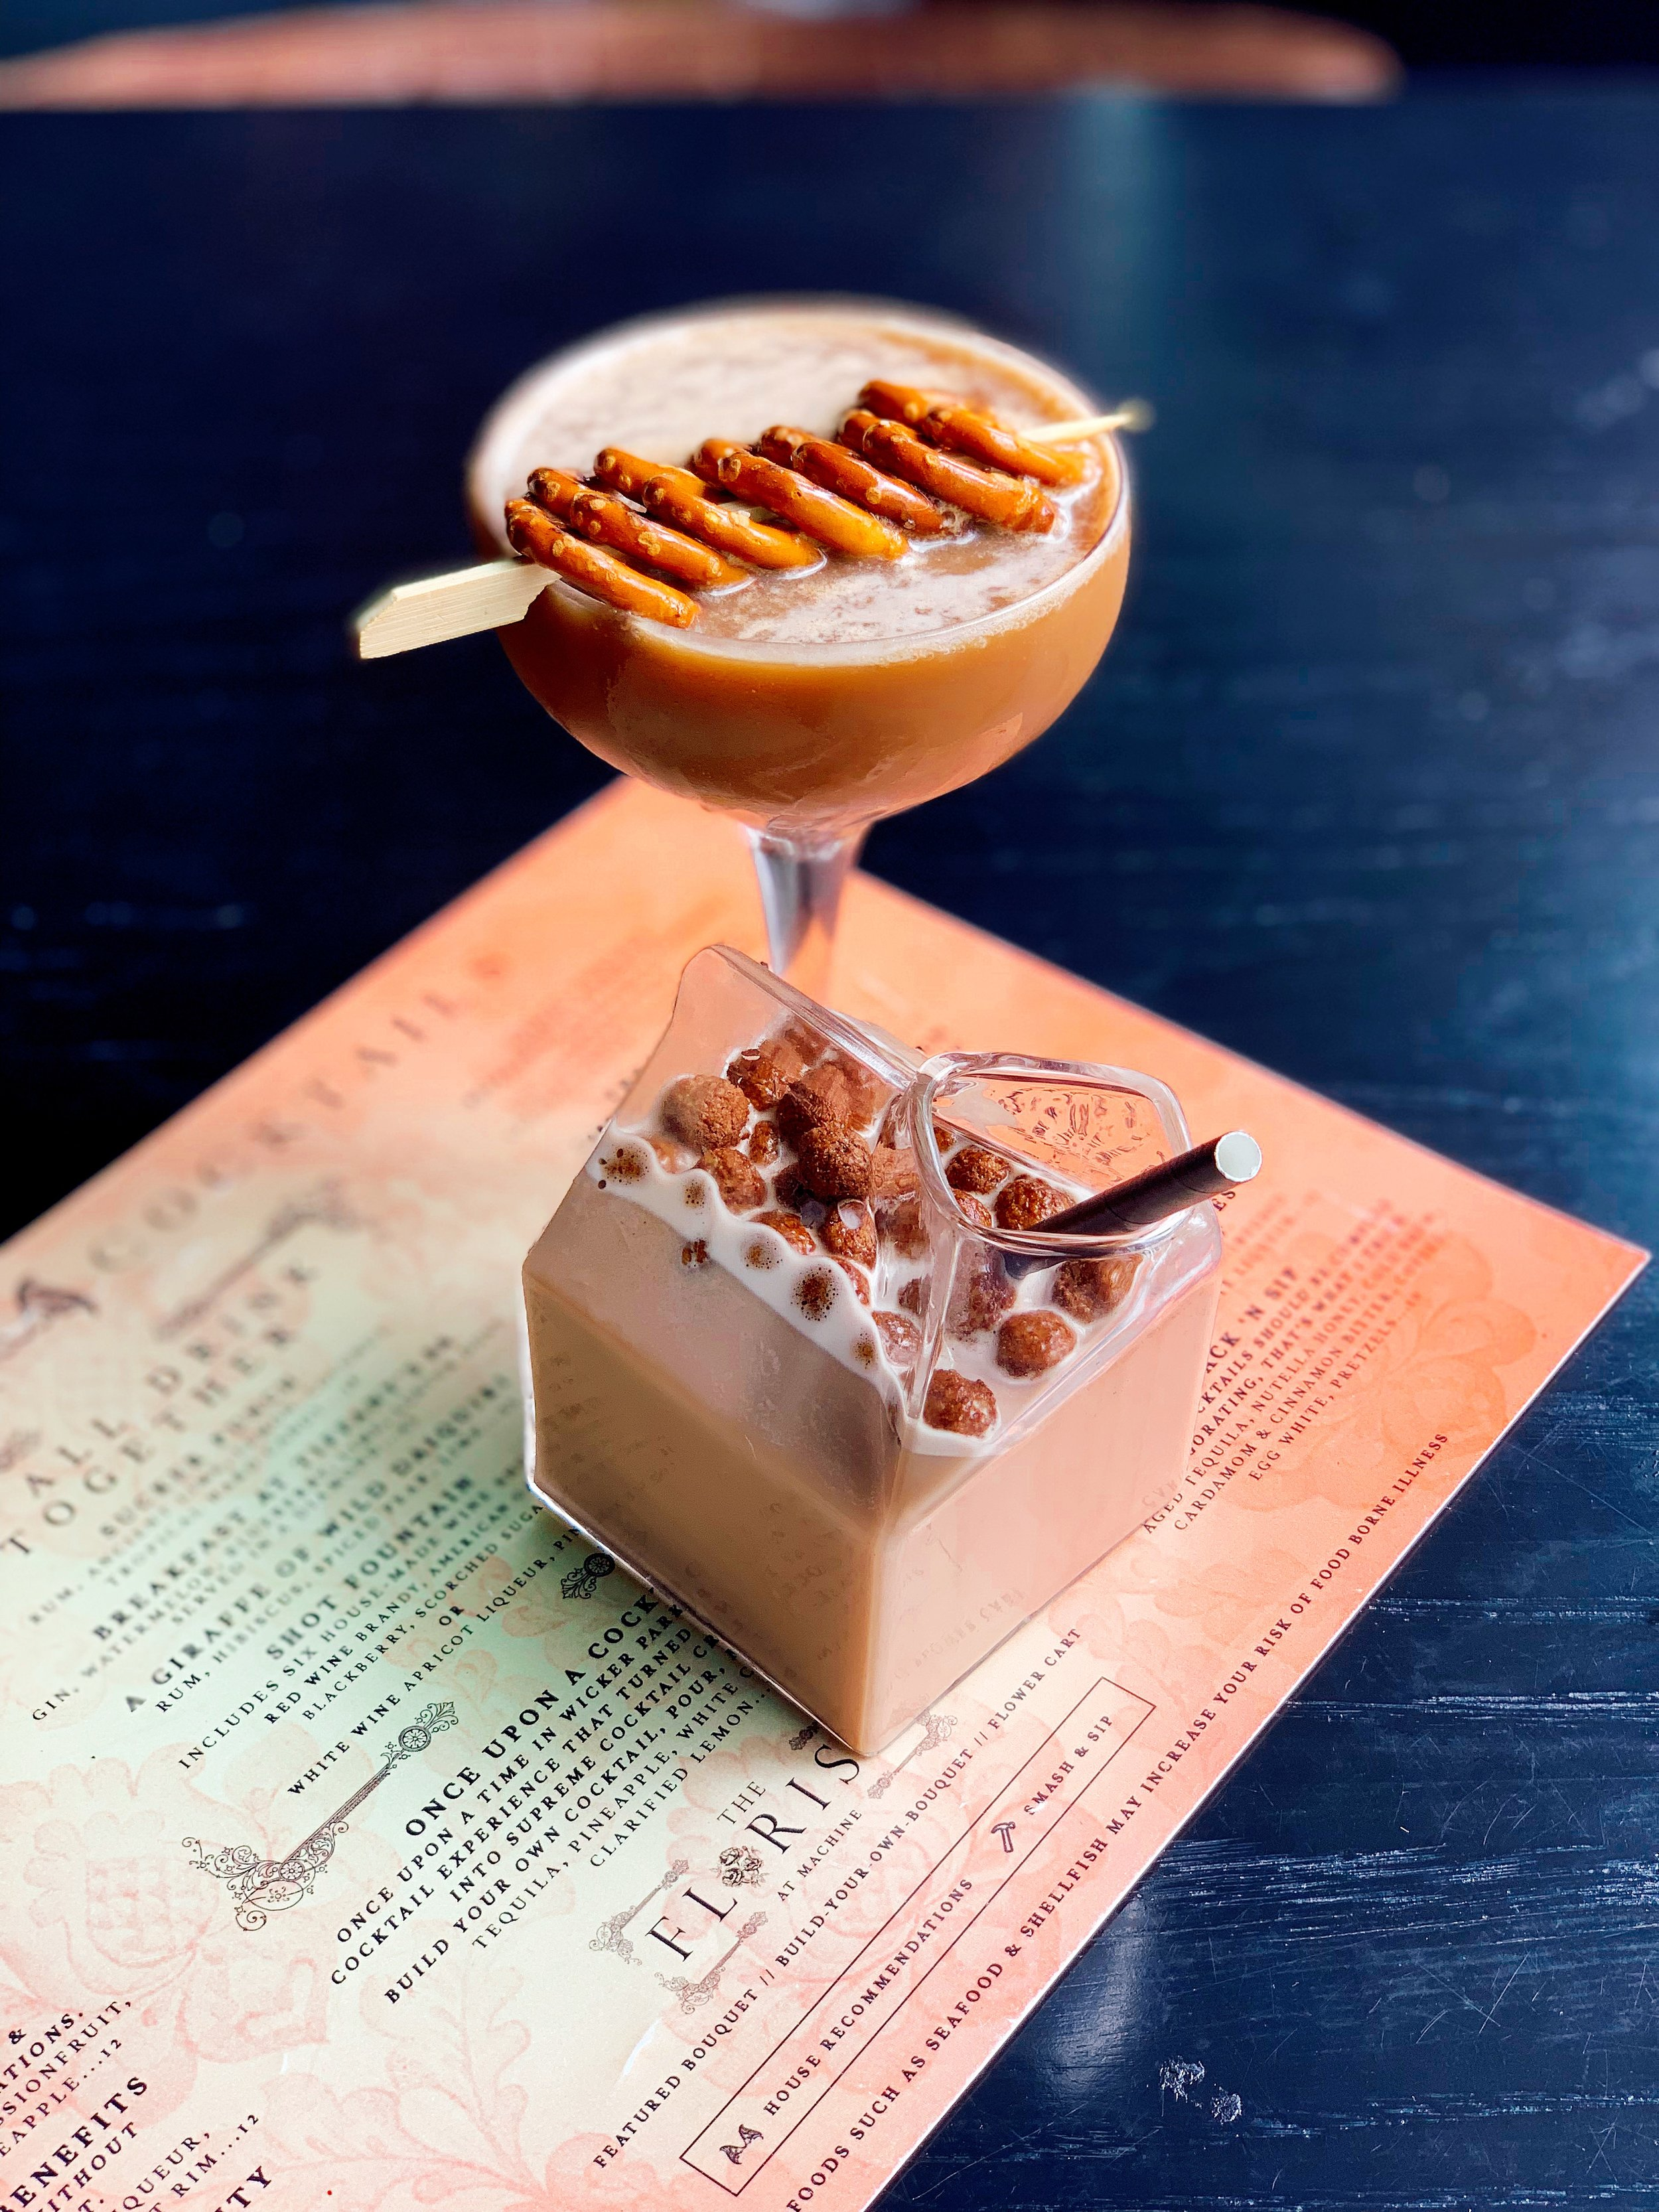 Snack 'N Sip (Top) | Aged Tequila + Nutella Honey + Cold Brew + Cardamom + Cinnamon Bitter + Coffee + Egg White + Pretzels  Alco'Hall and Oats (Bottom) | Bourbon + Cocoa-Puff Infused Oat Milk + Chocolate Liqueur